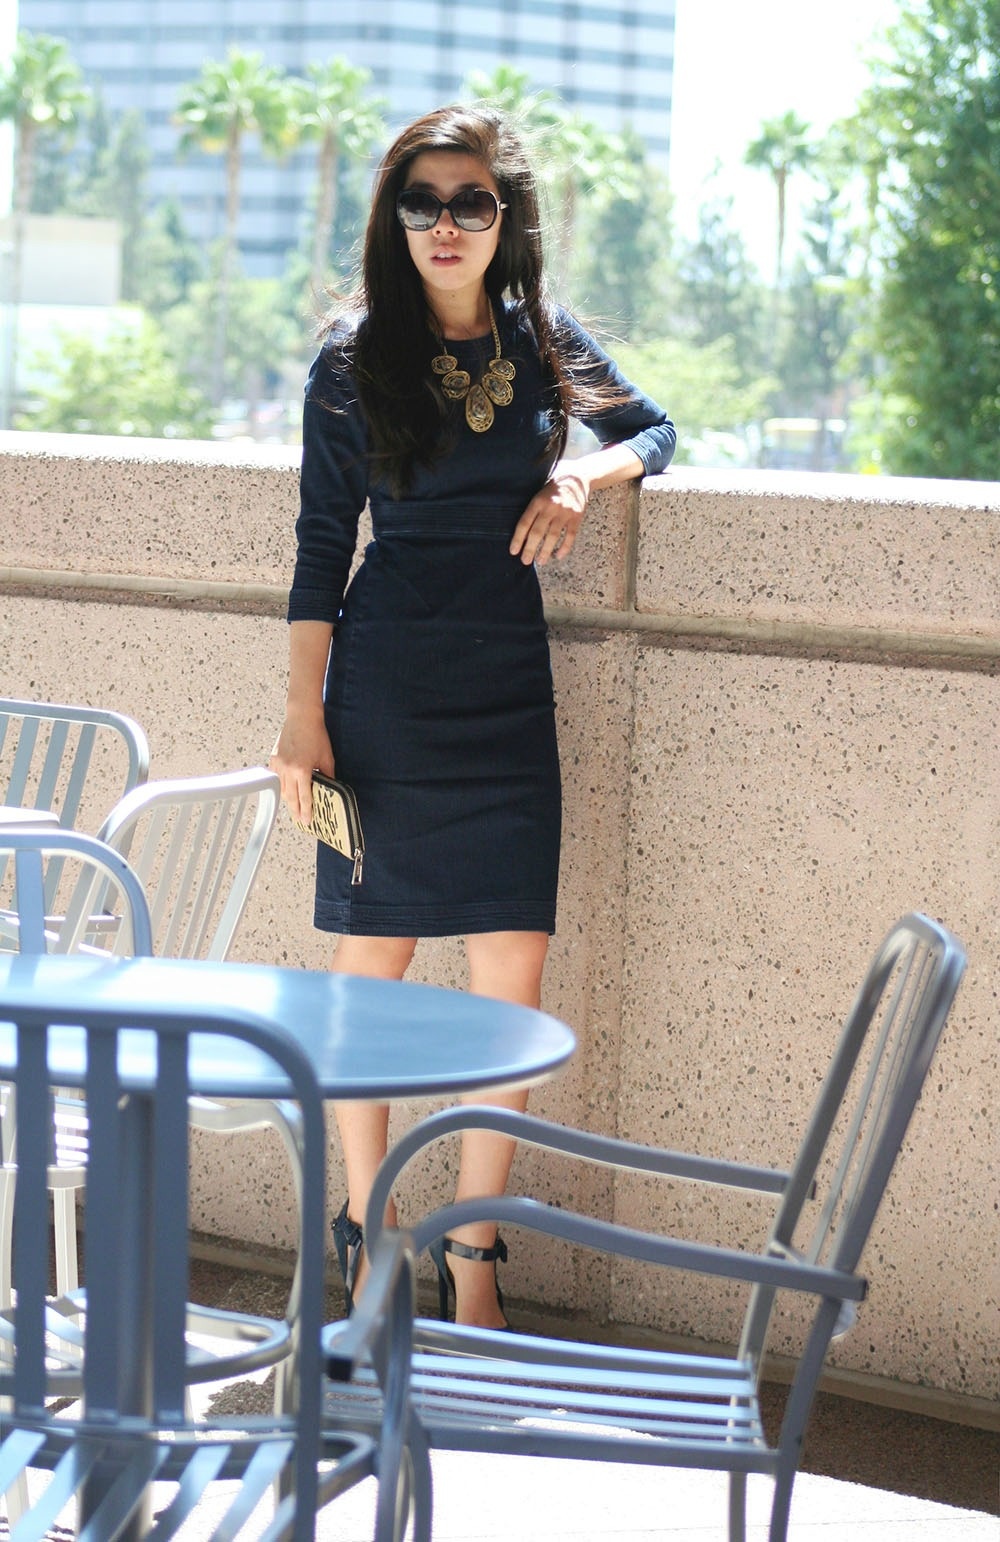 Adrienne Nguyen_Banana Republic Sponsored Post_Denim Bodycon Pencil Dress_What to Wear to Work)Work Wear Ideas_Petite Fashion